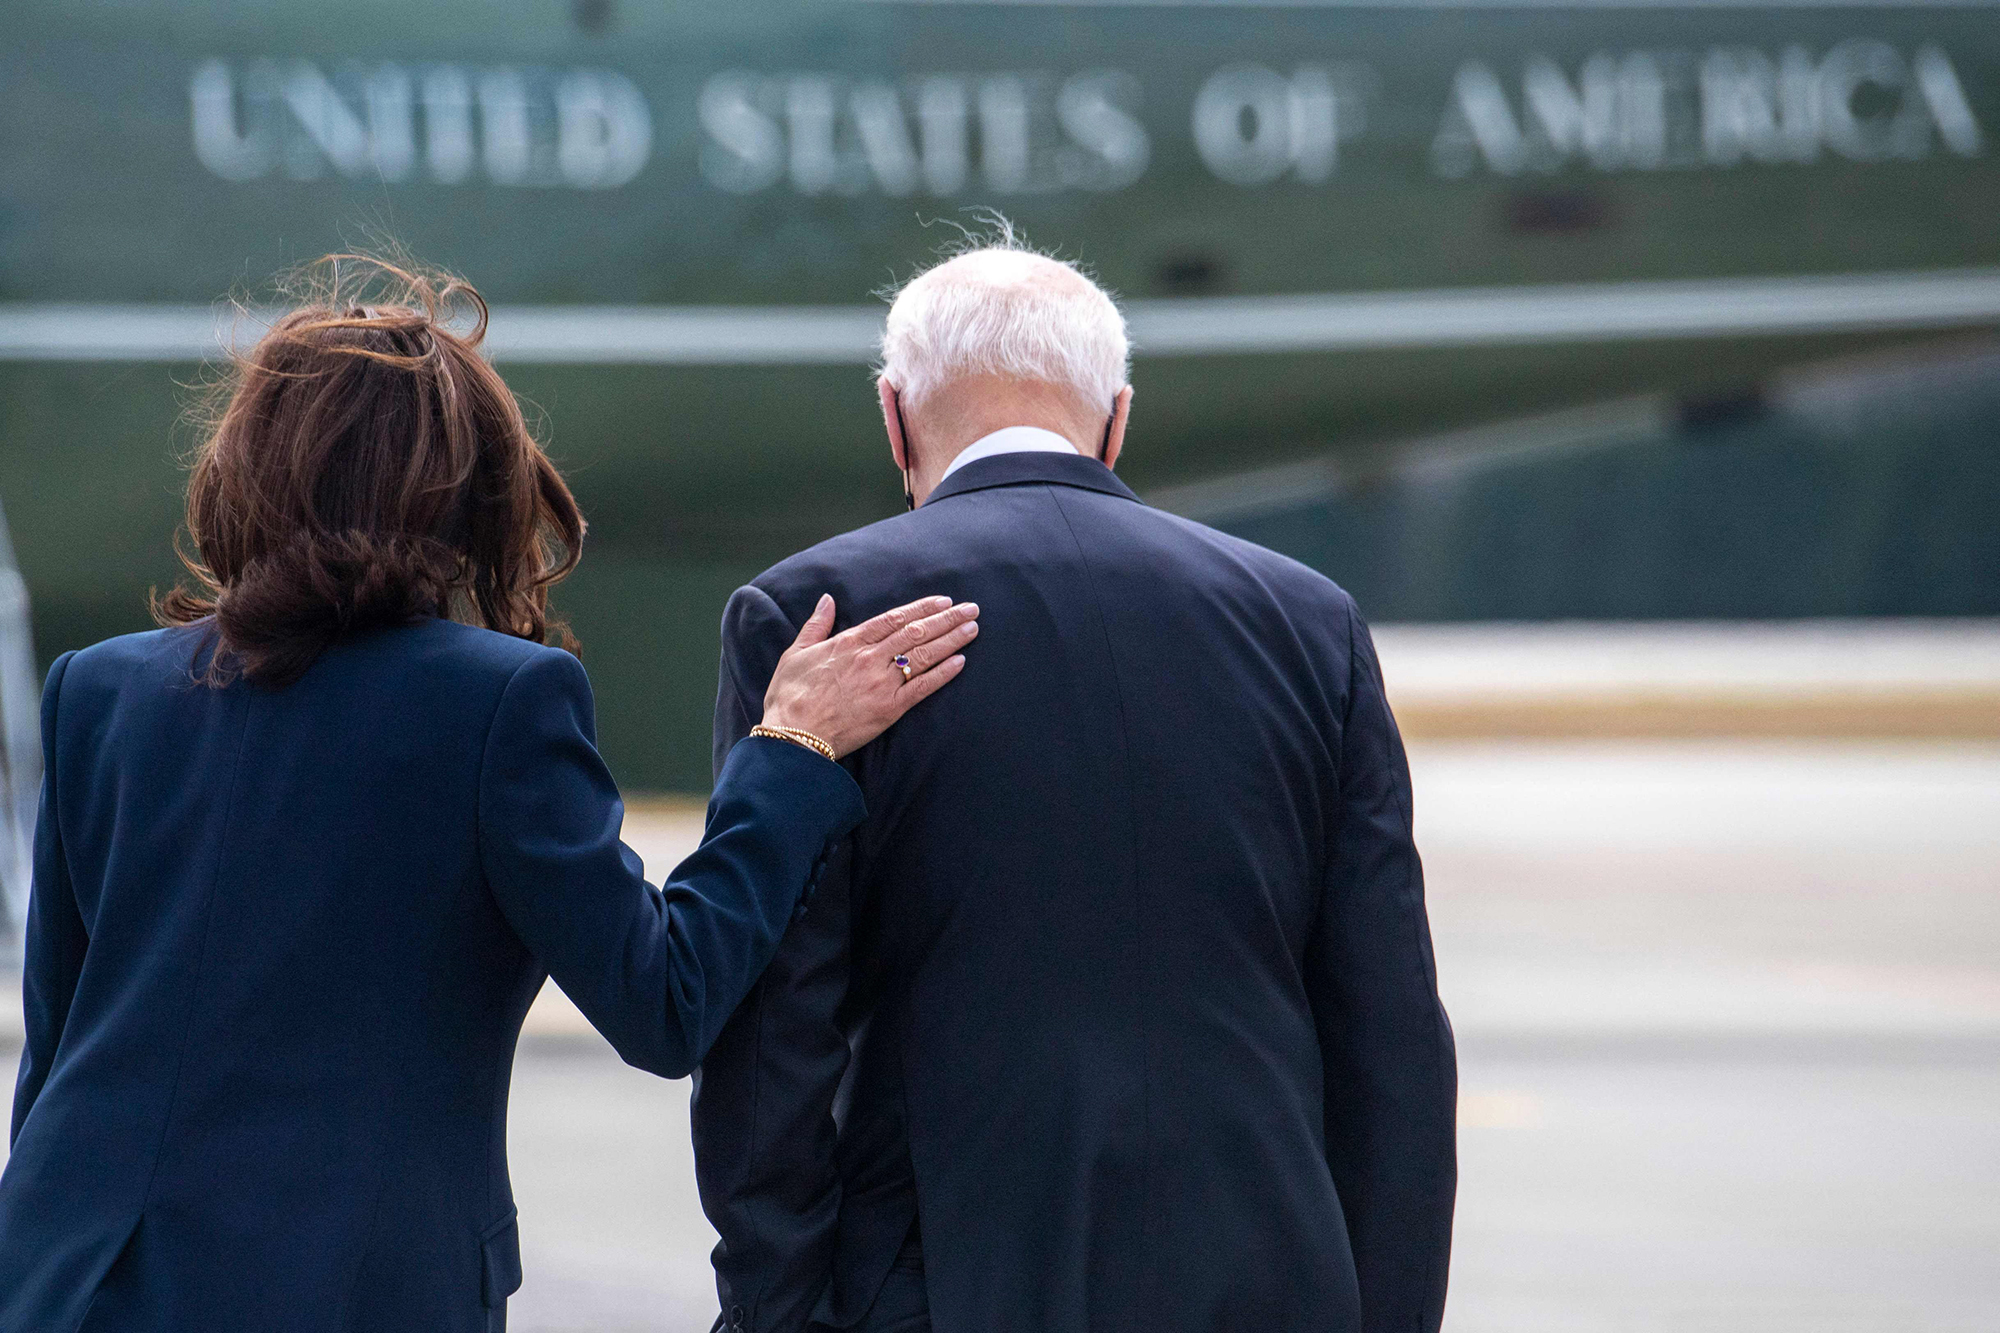 Biden's presidency will be short and disastrous